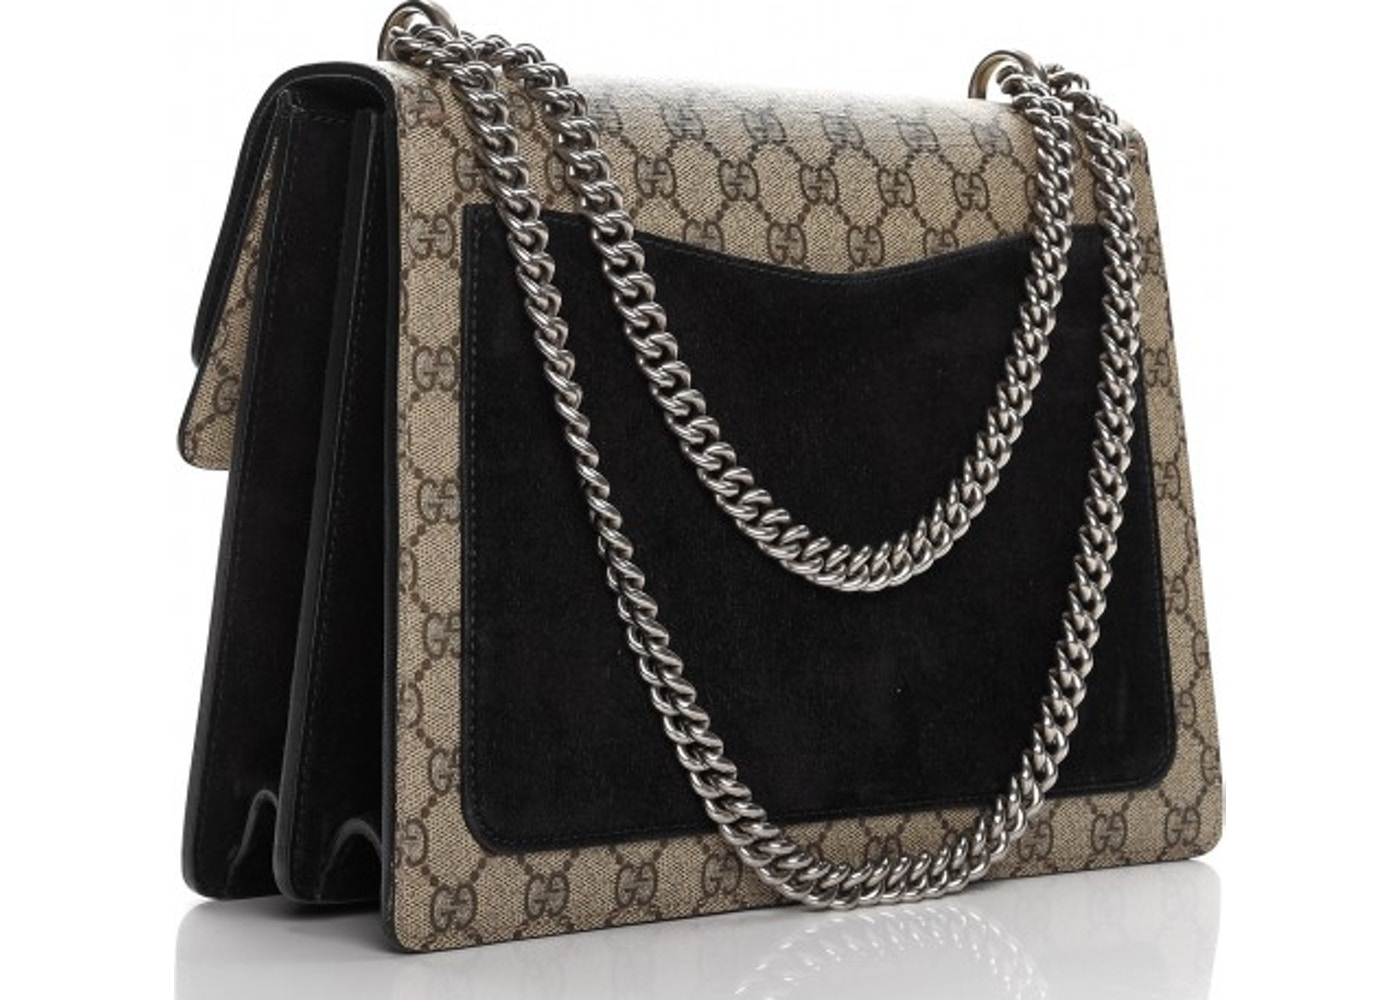 7c69b3469 Gucci Dionysus Shoulder Bag Monogram GG Medium Black/Beige